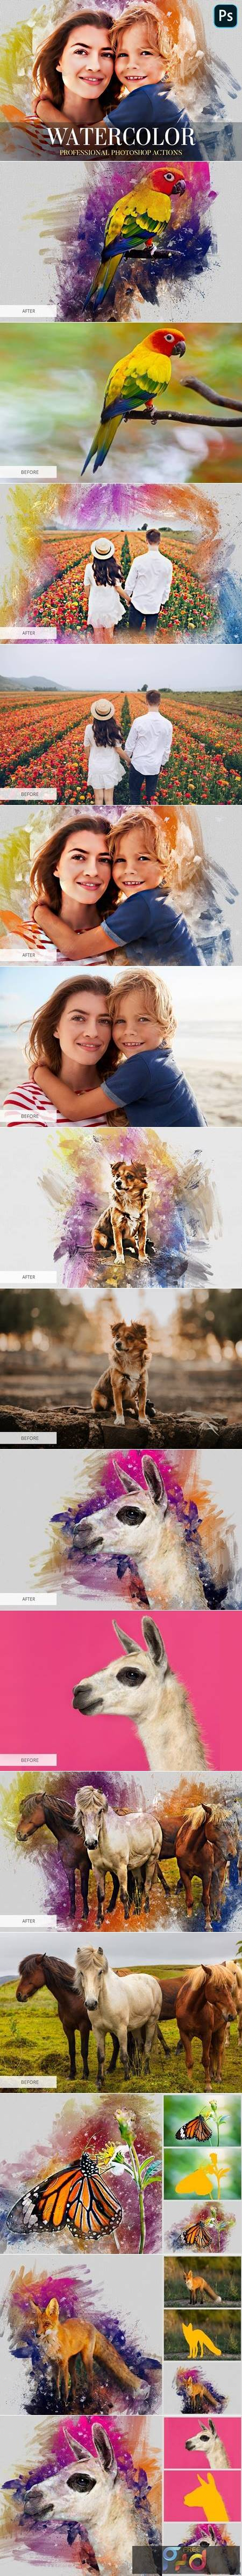 Watercolor Photoshop Action 4870553 1